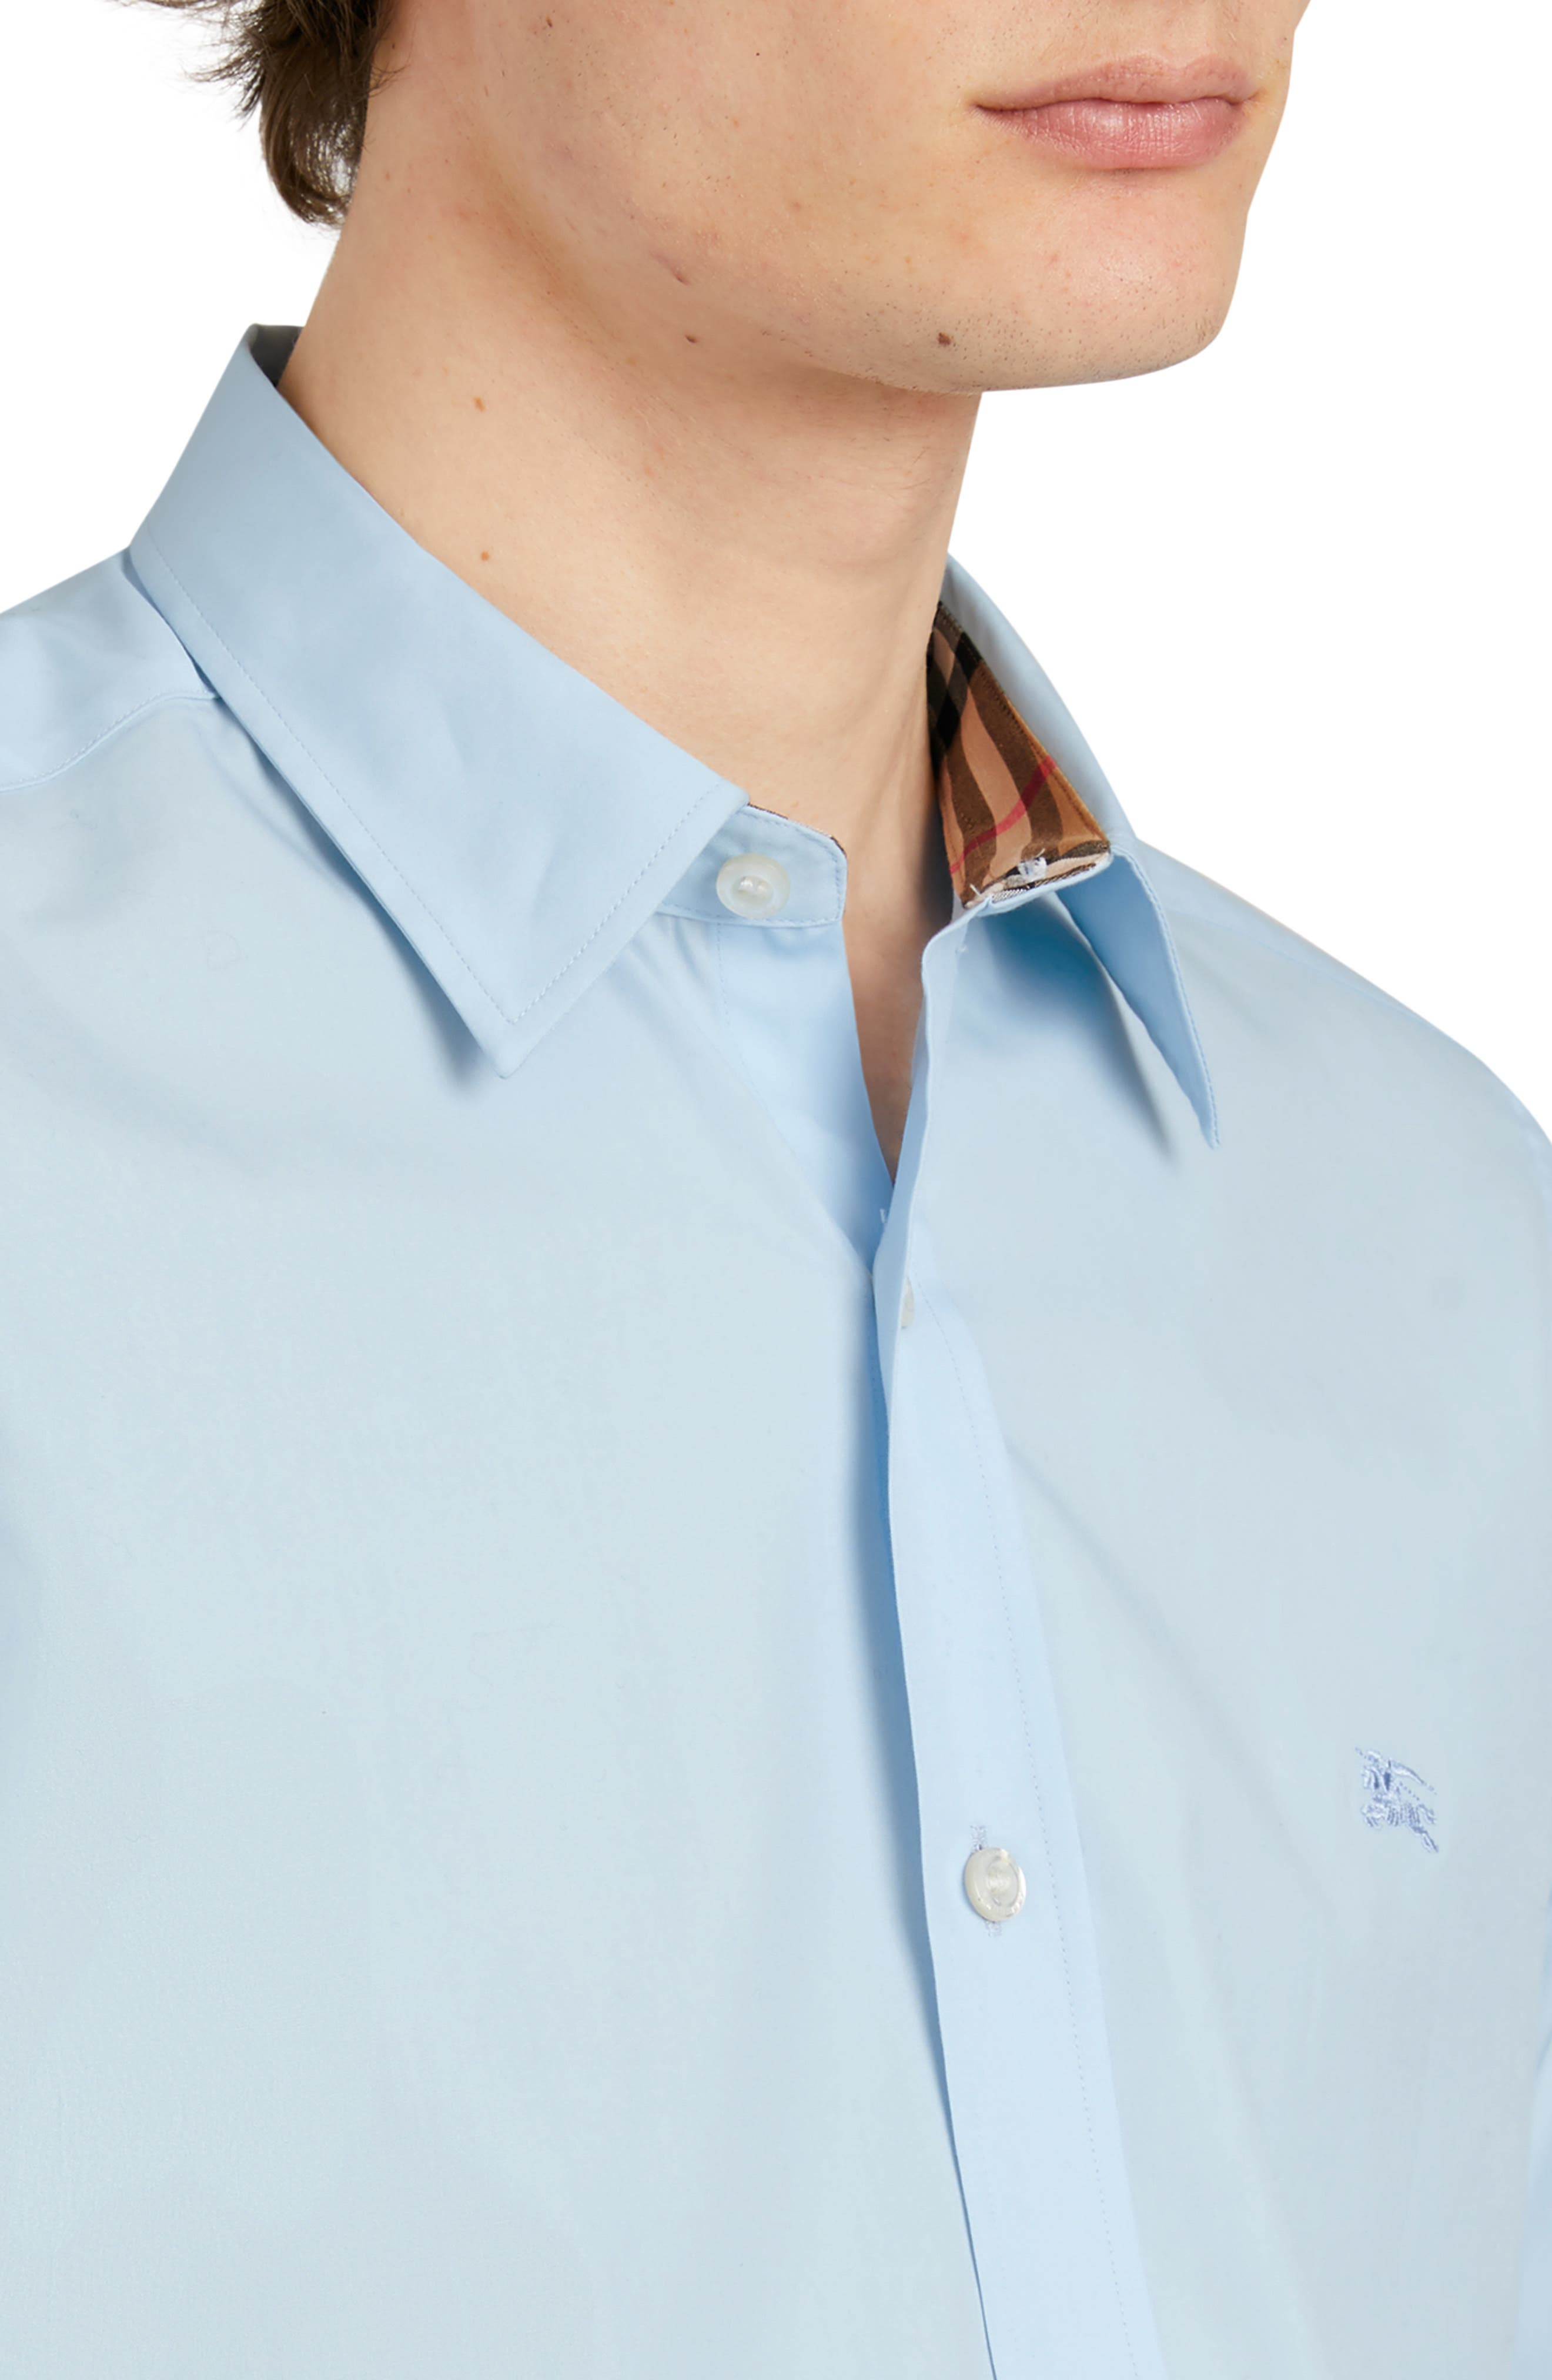 BURBERRY,                             William Stretch Poplin Sport Shirt,                             Alternate thumbnail 2, color,                             PALE BLUE